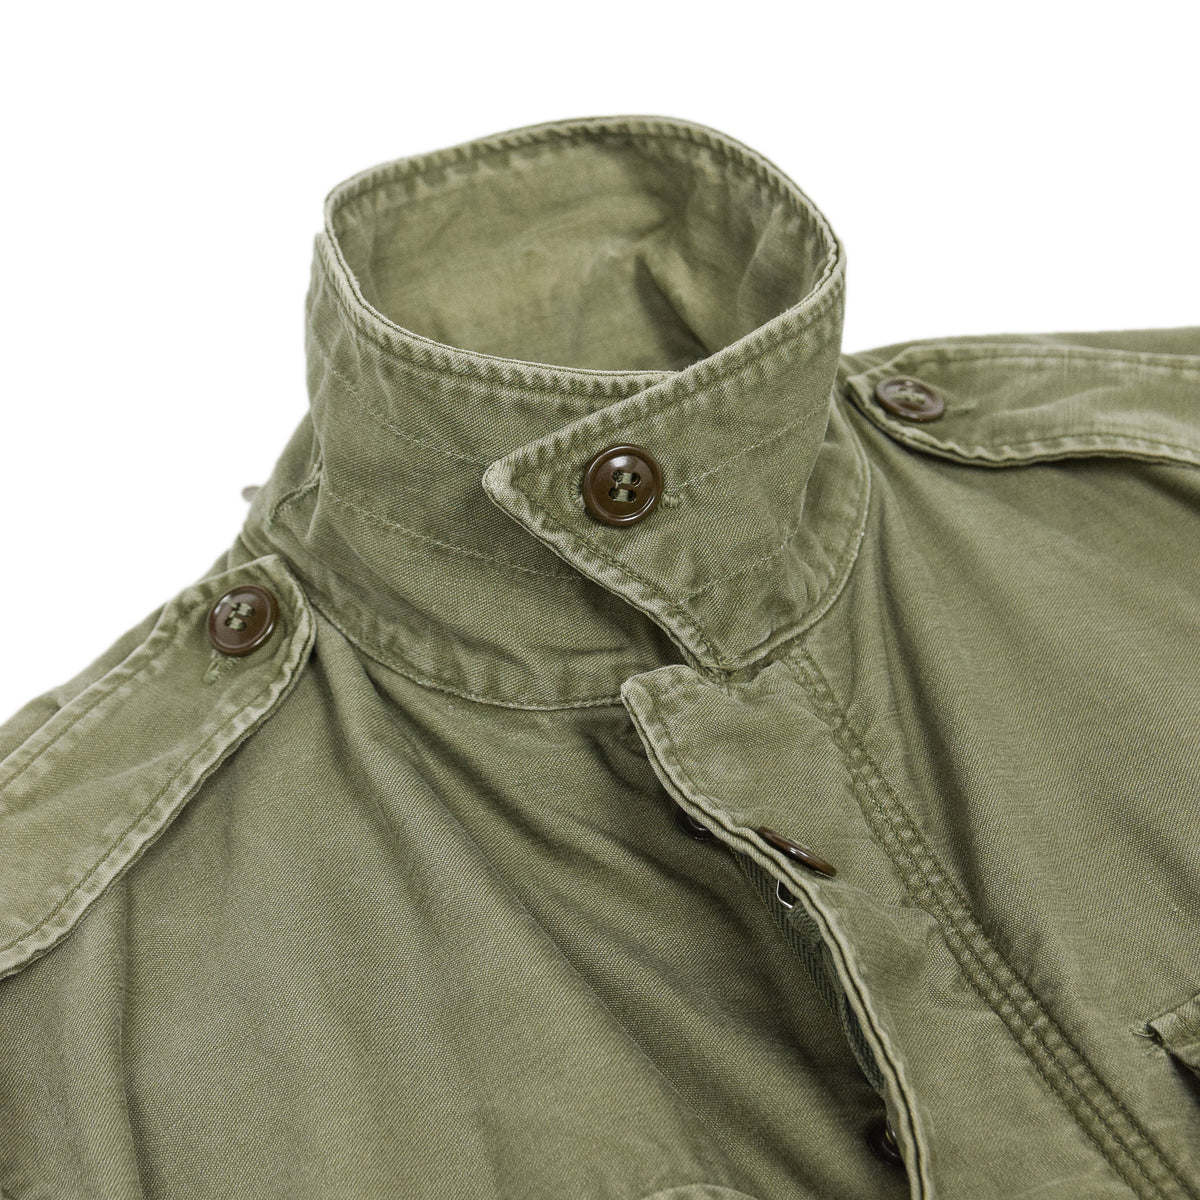 Vintage 50s M-1951 Korean War US Army Field Jacket Olive Green M collar